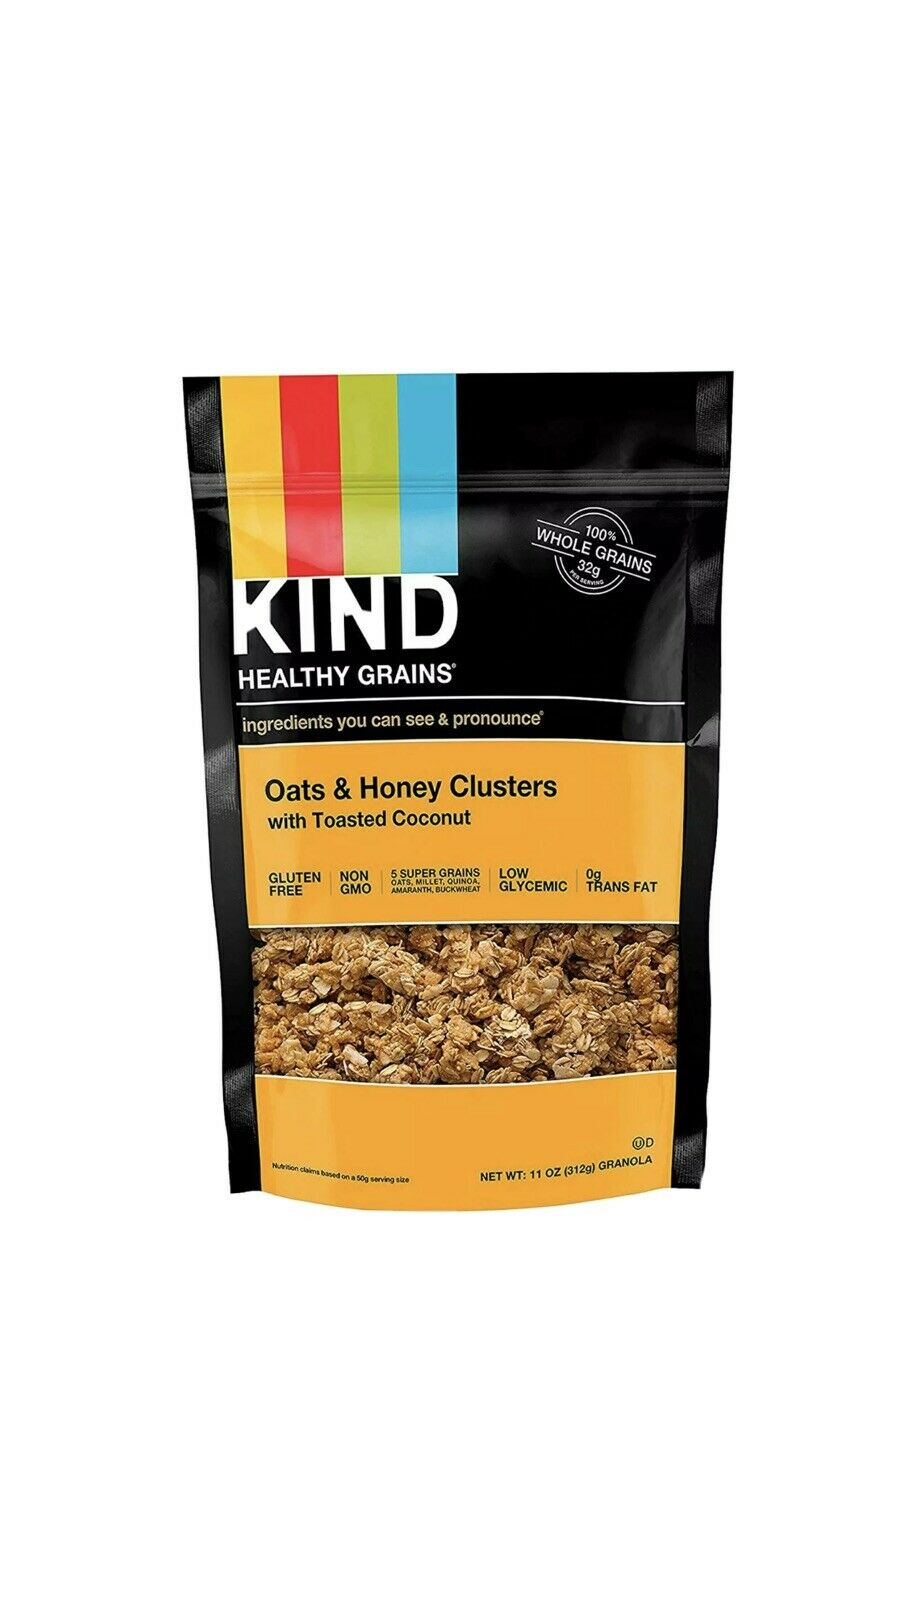 3 Healthy Grains Oats & Honey Clusters with Toasted Coconut, 11 oz Gluten Free